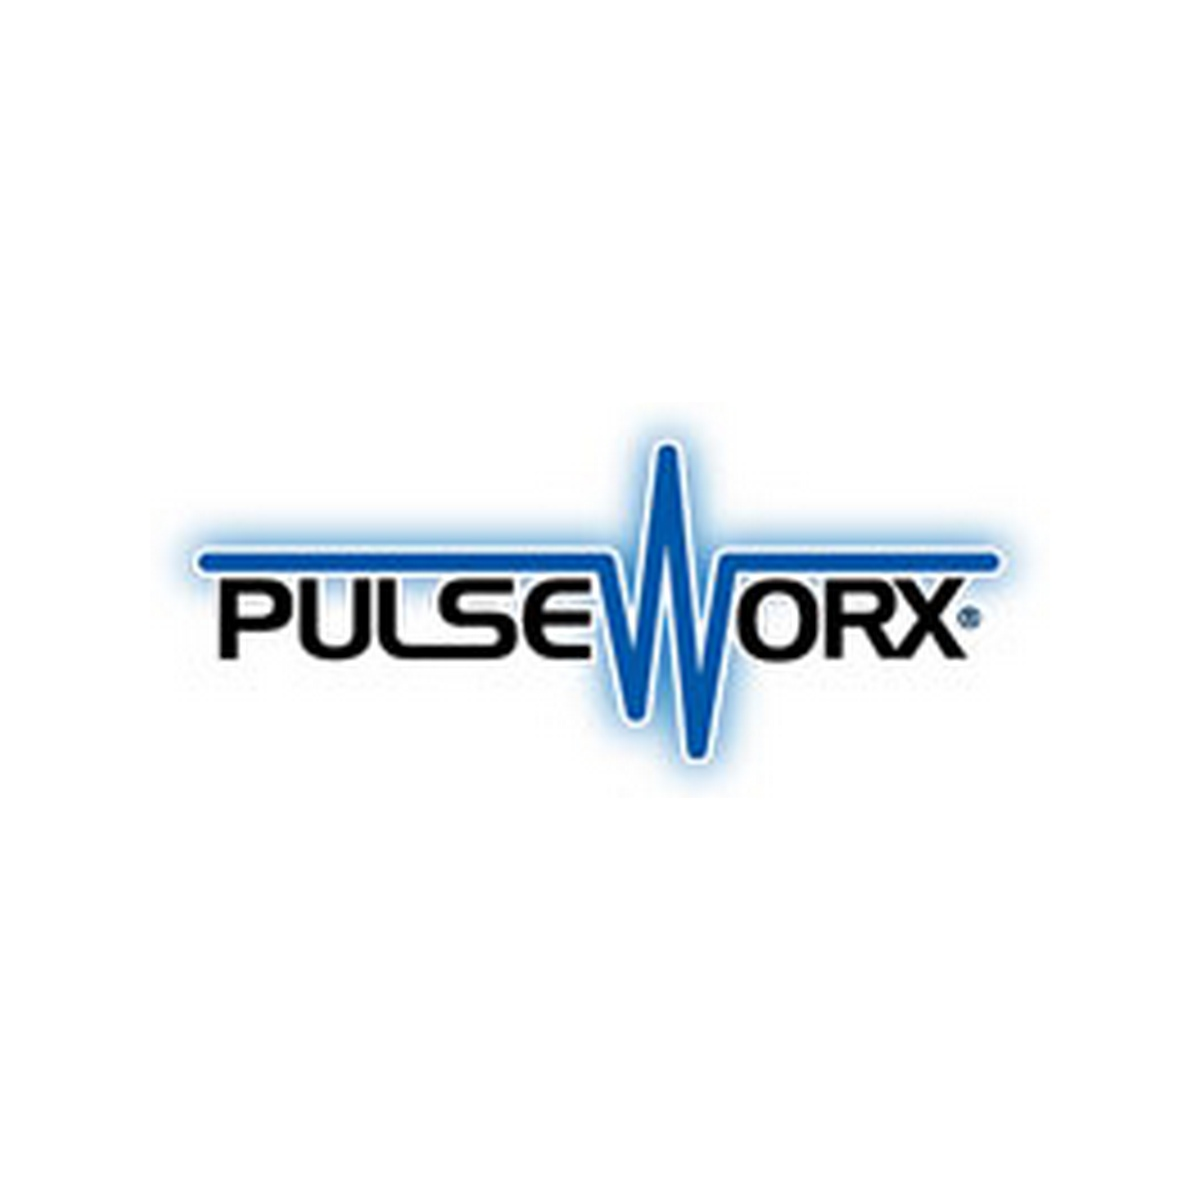 PulseWorx - Mark X Ballast Dimmer/Switch, 600W